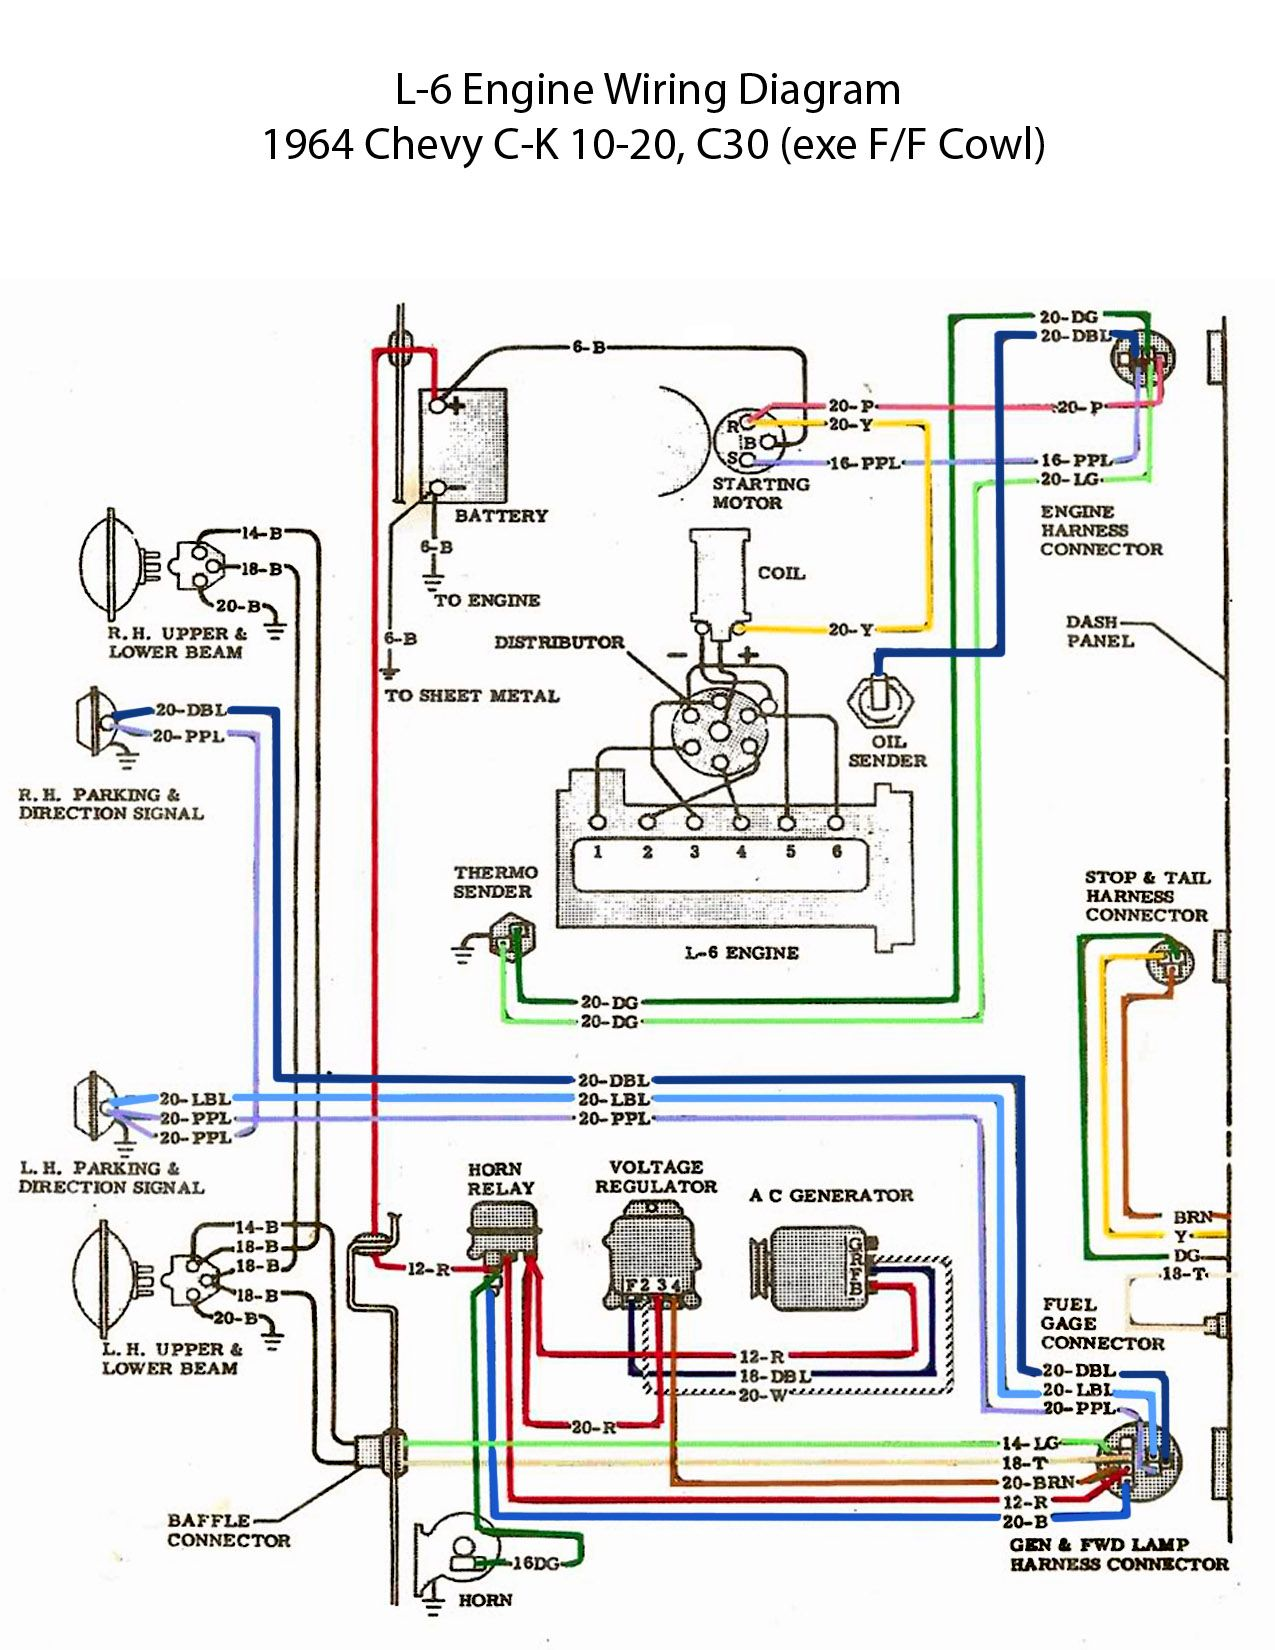 electric l 6 engine wiring diagram 60s chevy c10 wiring rh pinterest com Chevy Truck Wiring Diagram Chevy Silverado Wiring Diagram